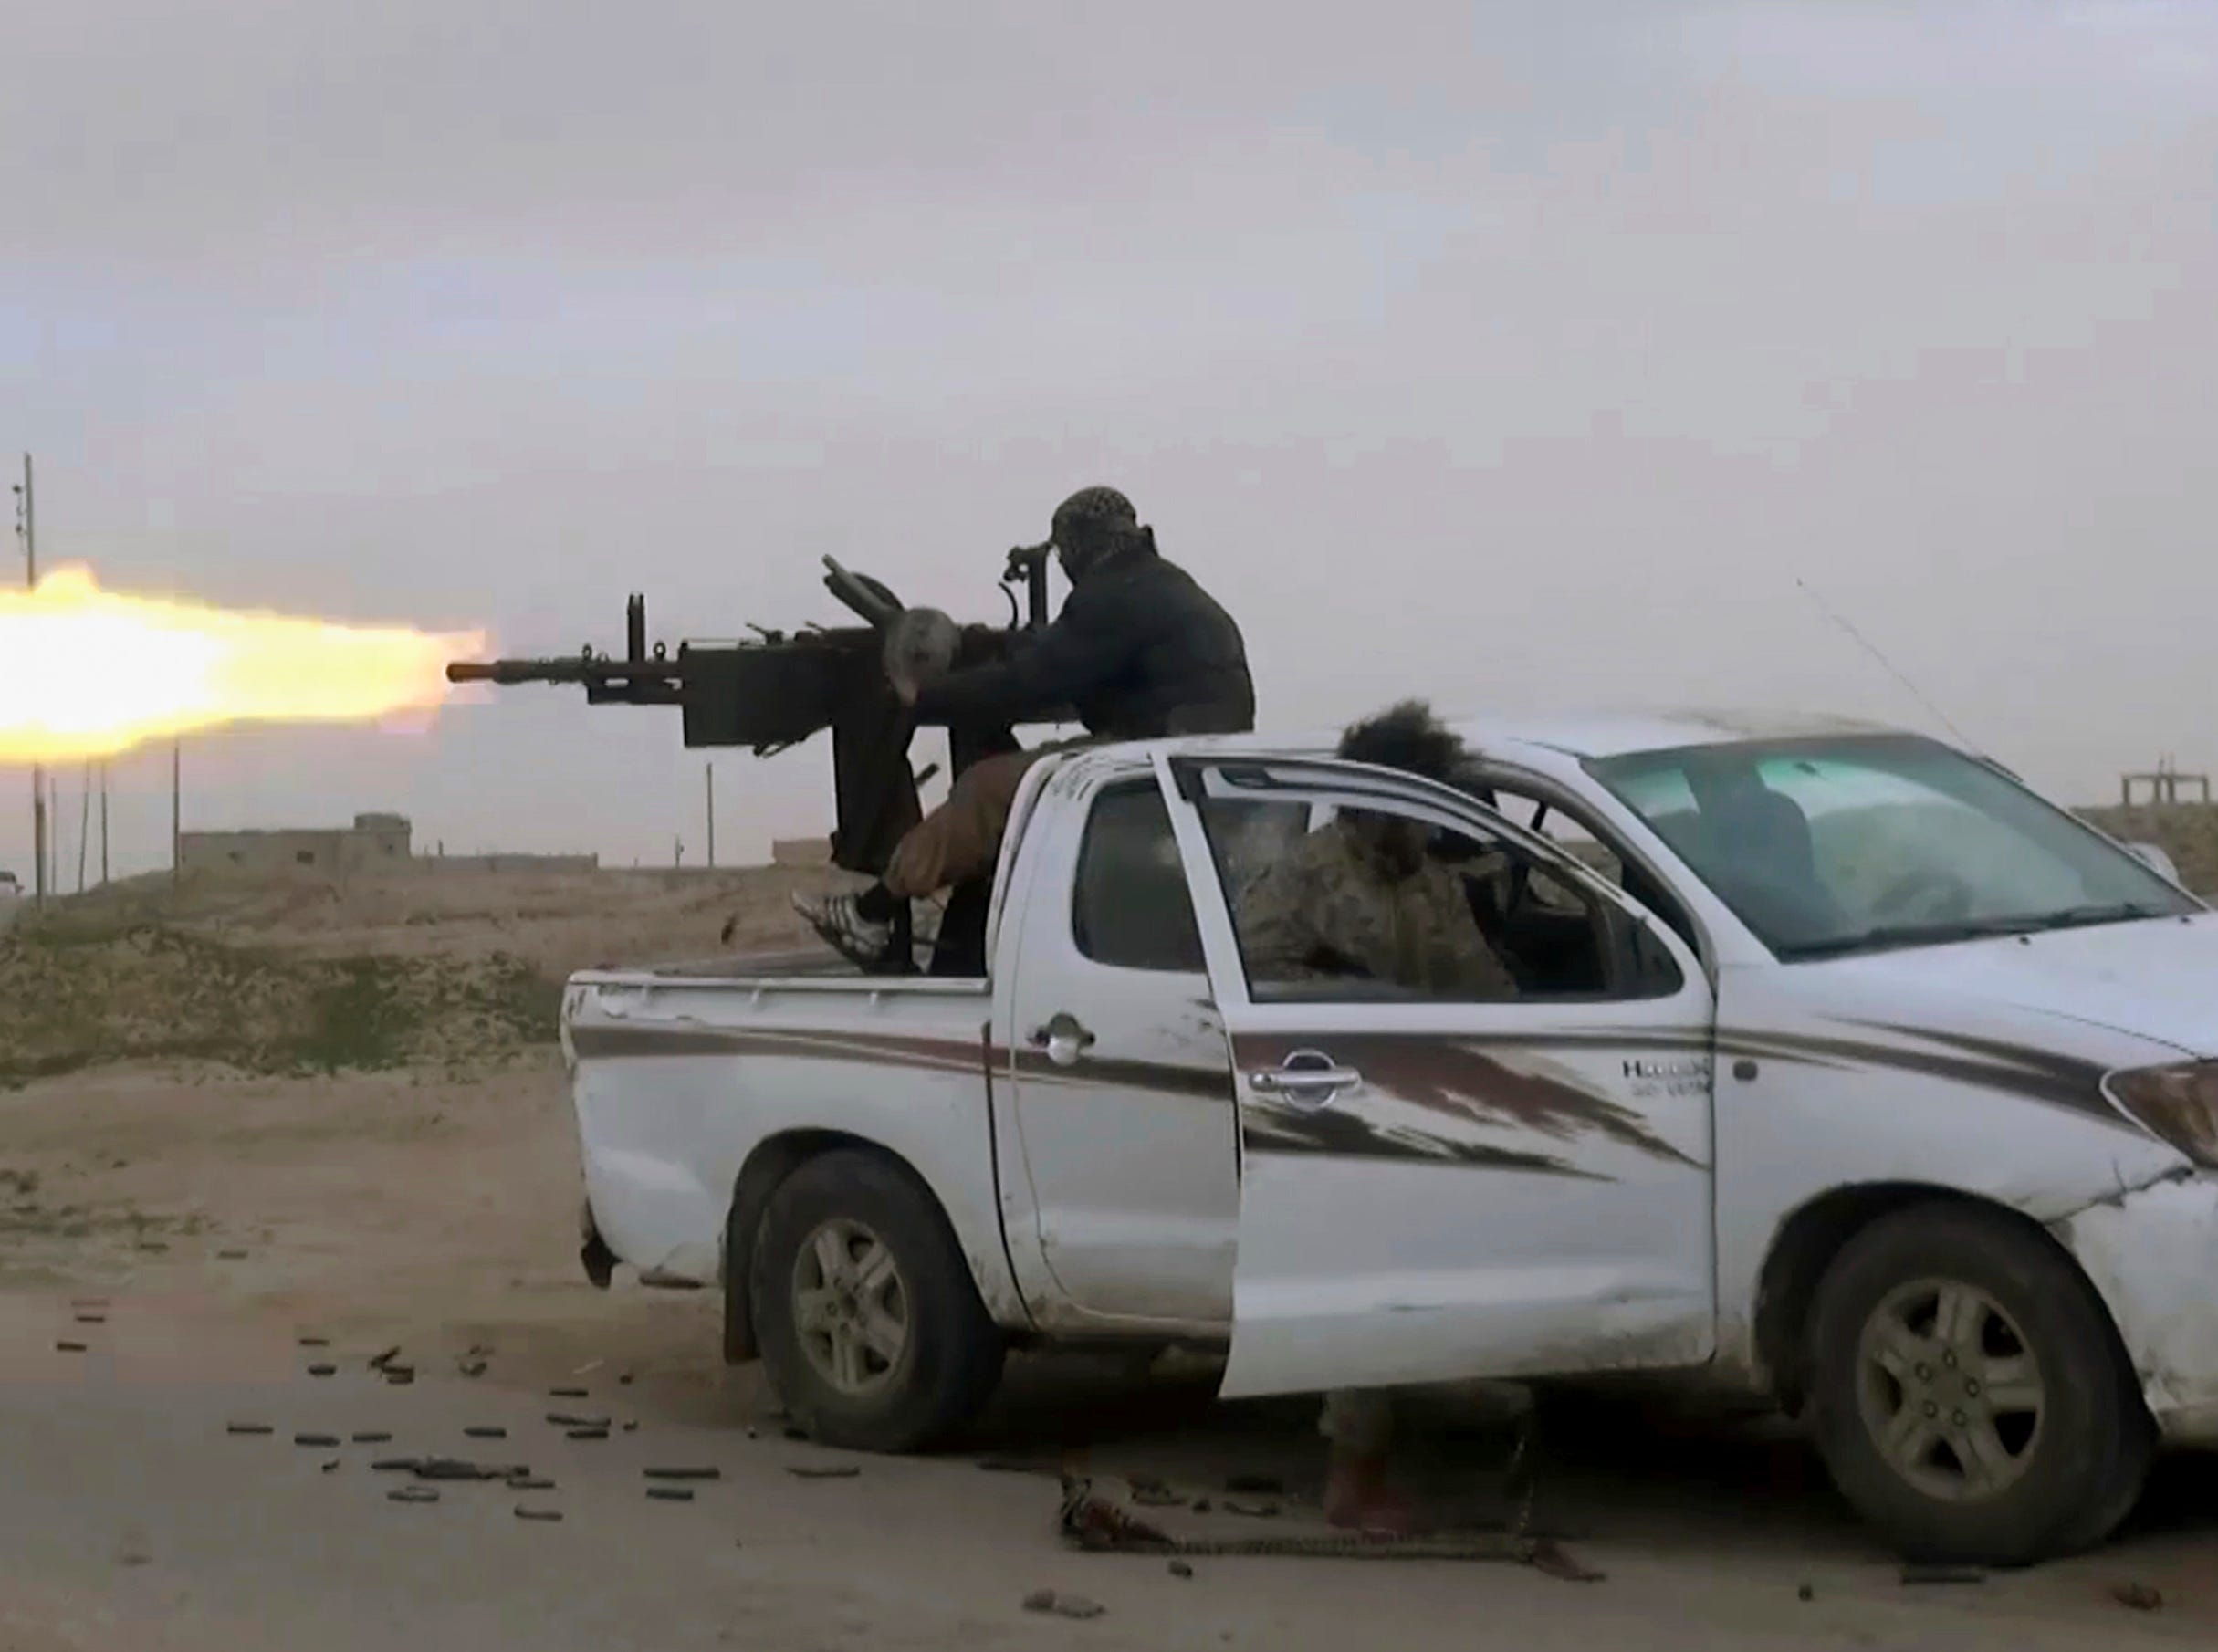 This frame grab from video posted online Friday, Jan. 18, 2019, by supporters of the Islamic State group, purports to show a gun-mounted Islamic State group vehicle firing at members of the U.S.-backed Syrian Democratic Forces, in Deir el-Zour, Syria.